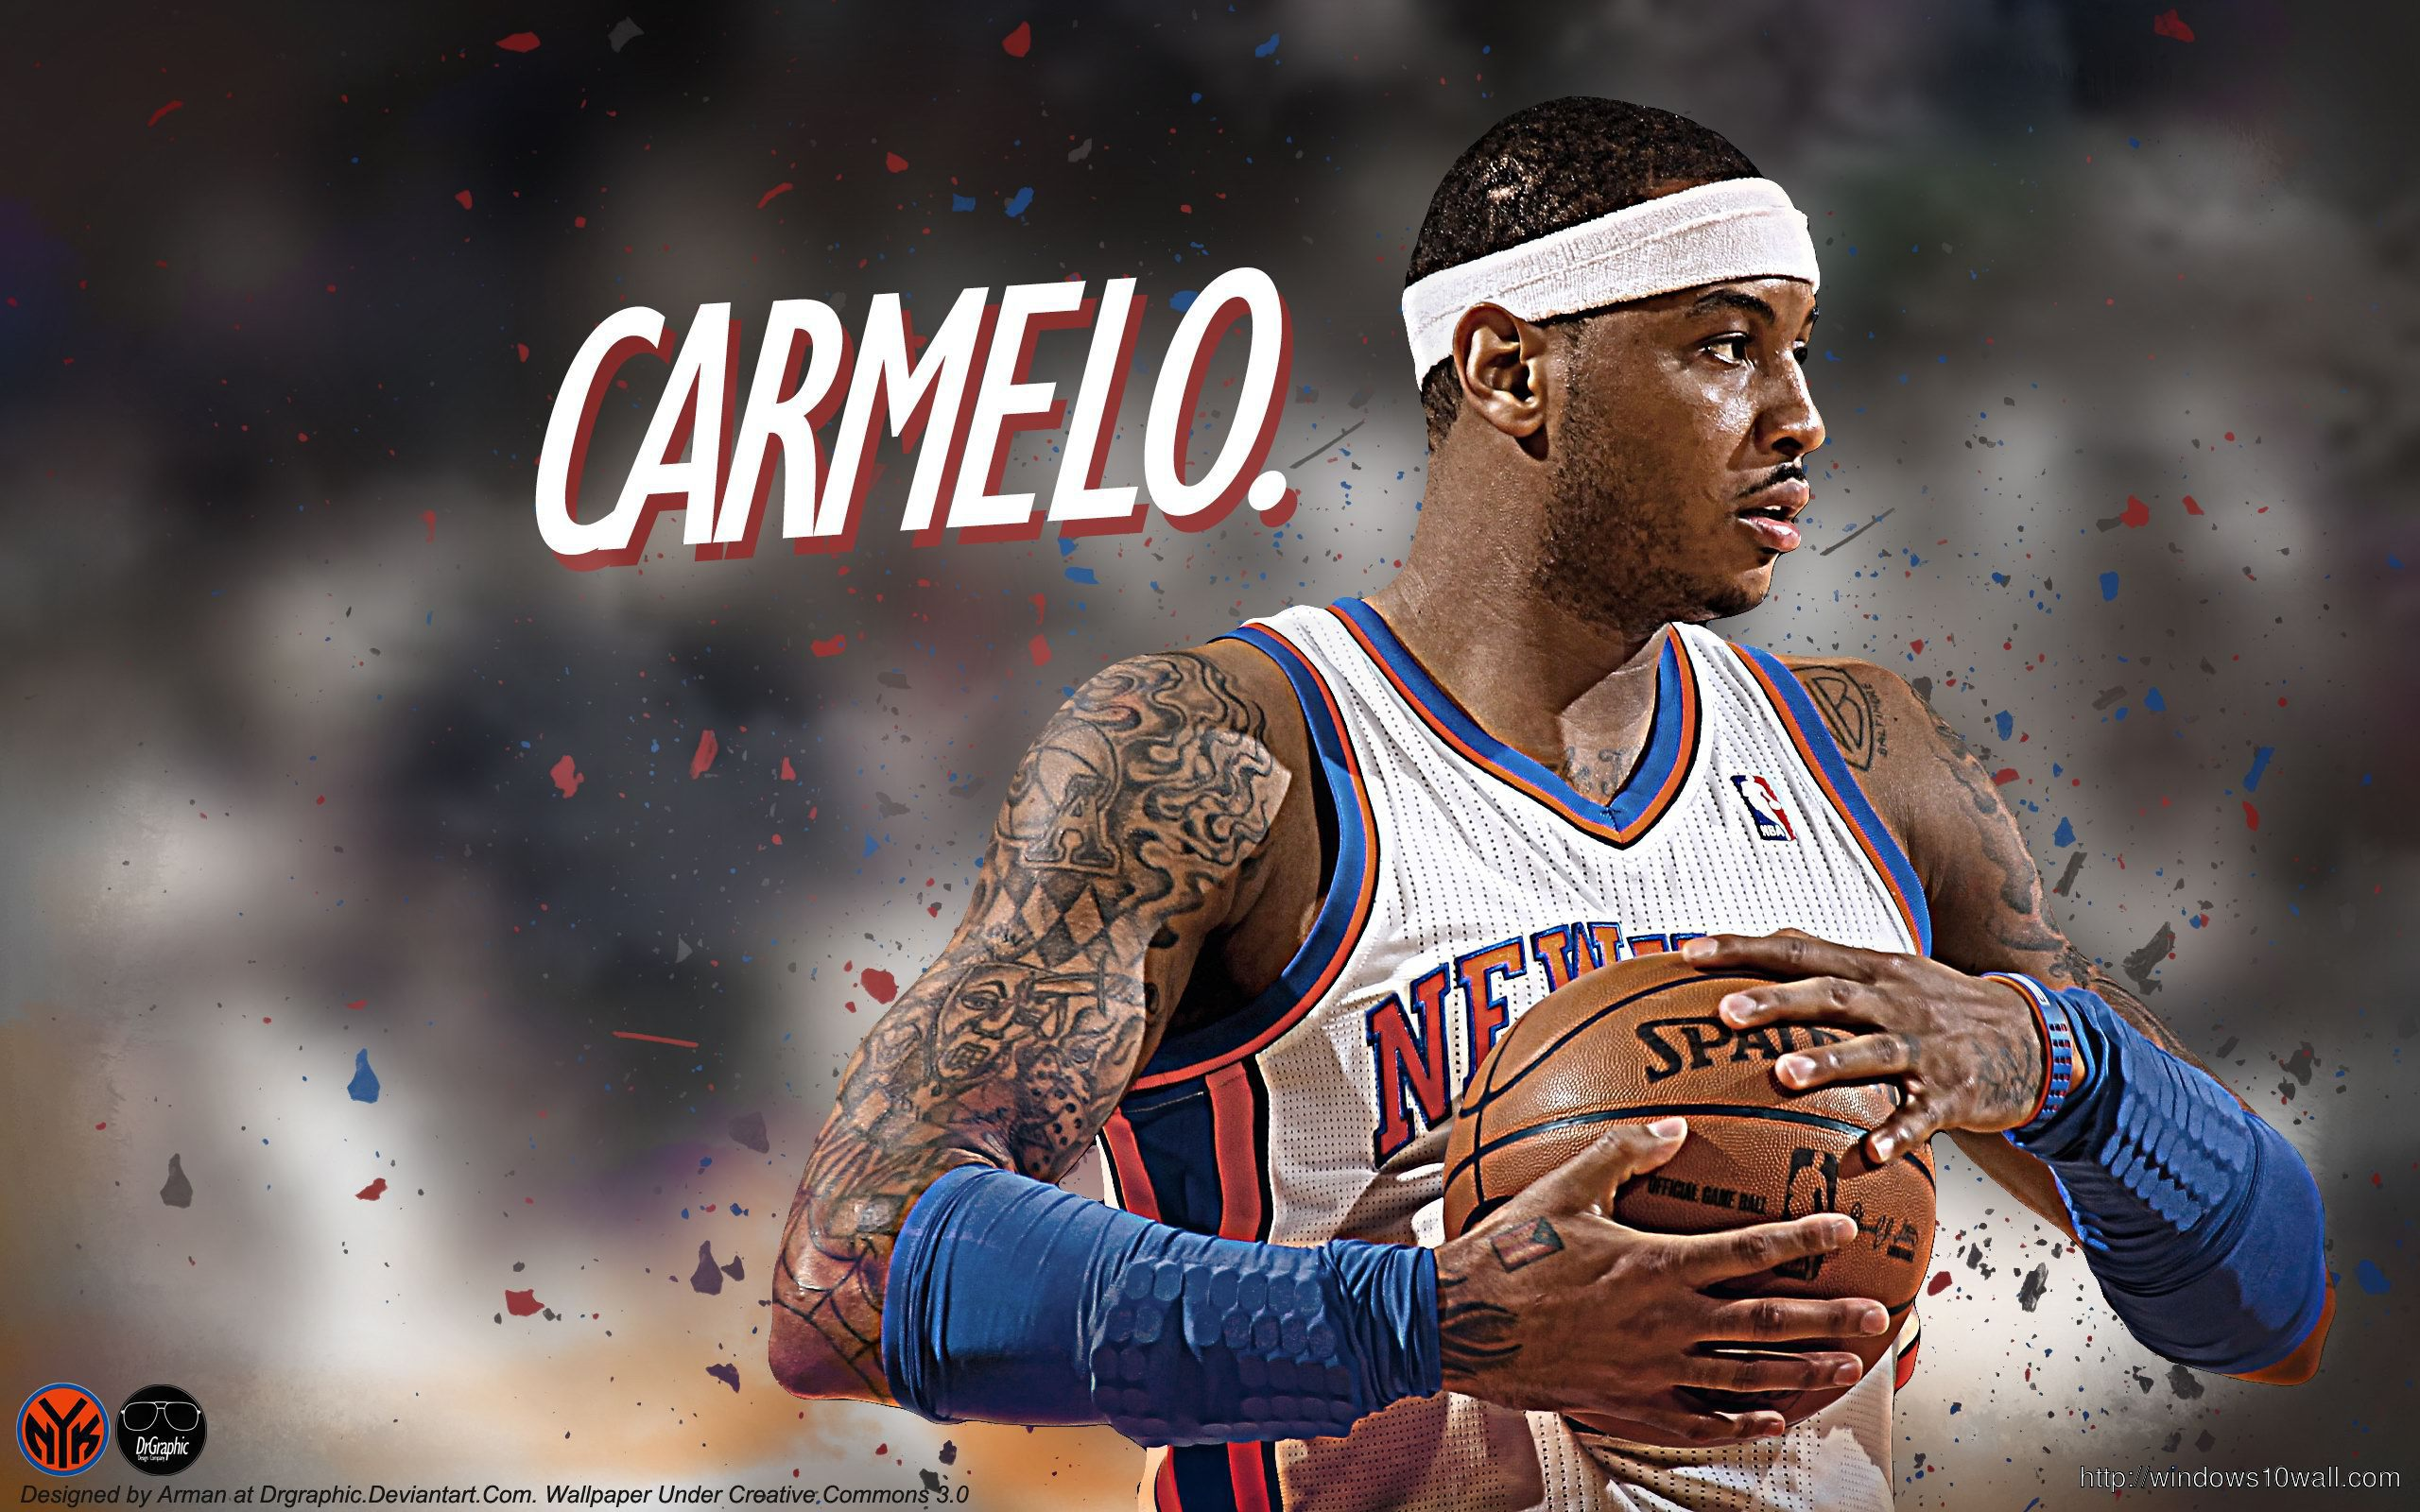 Carmelo Anthony in Game HD Wallpaper